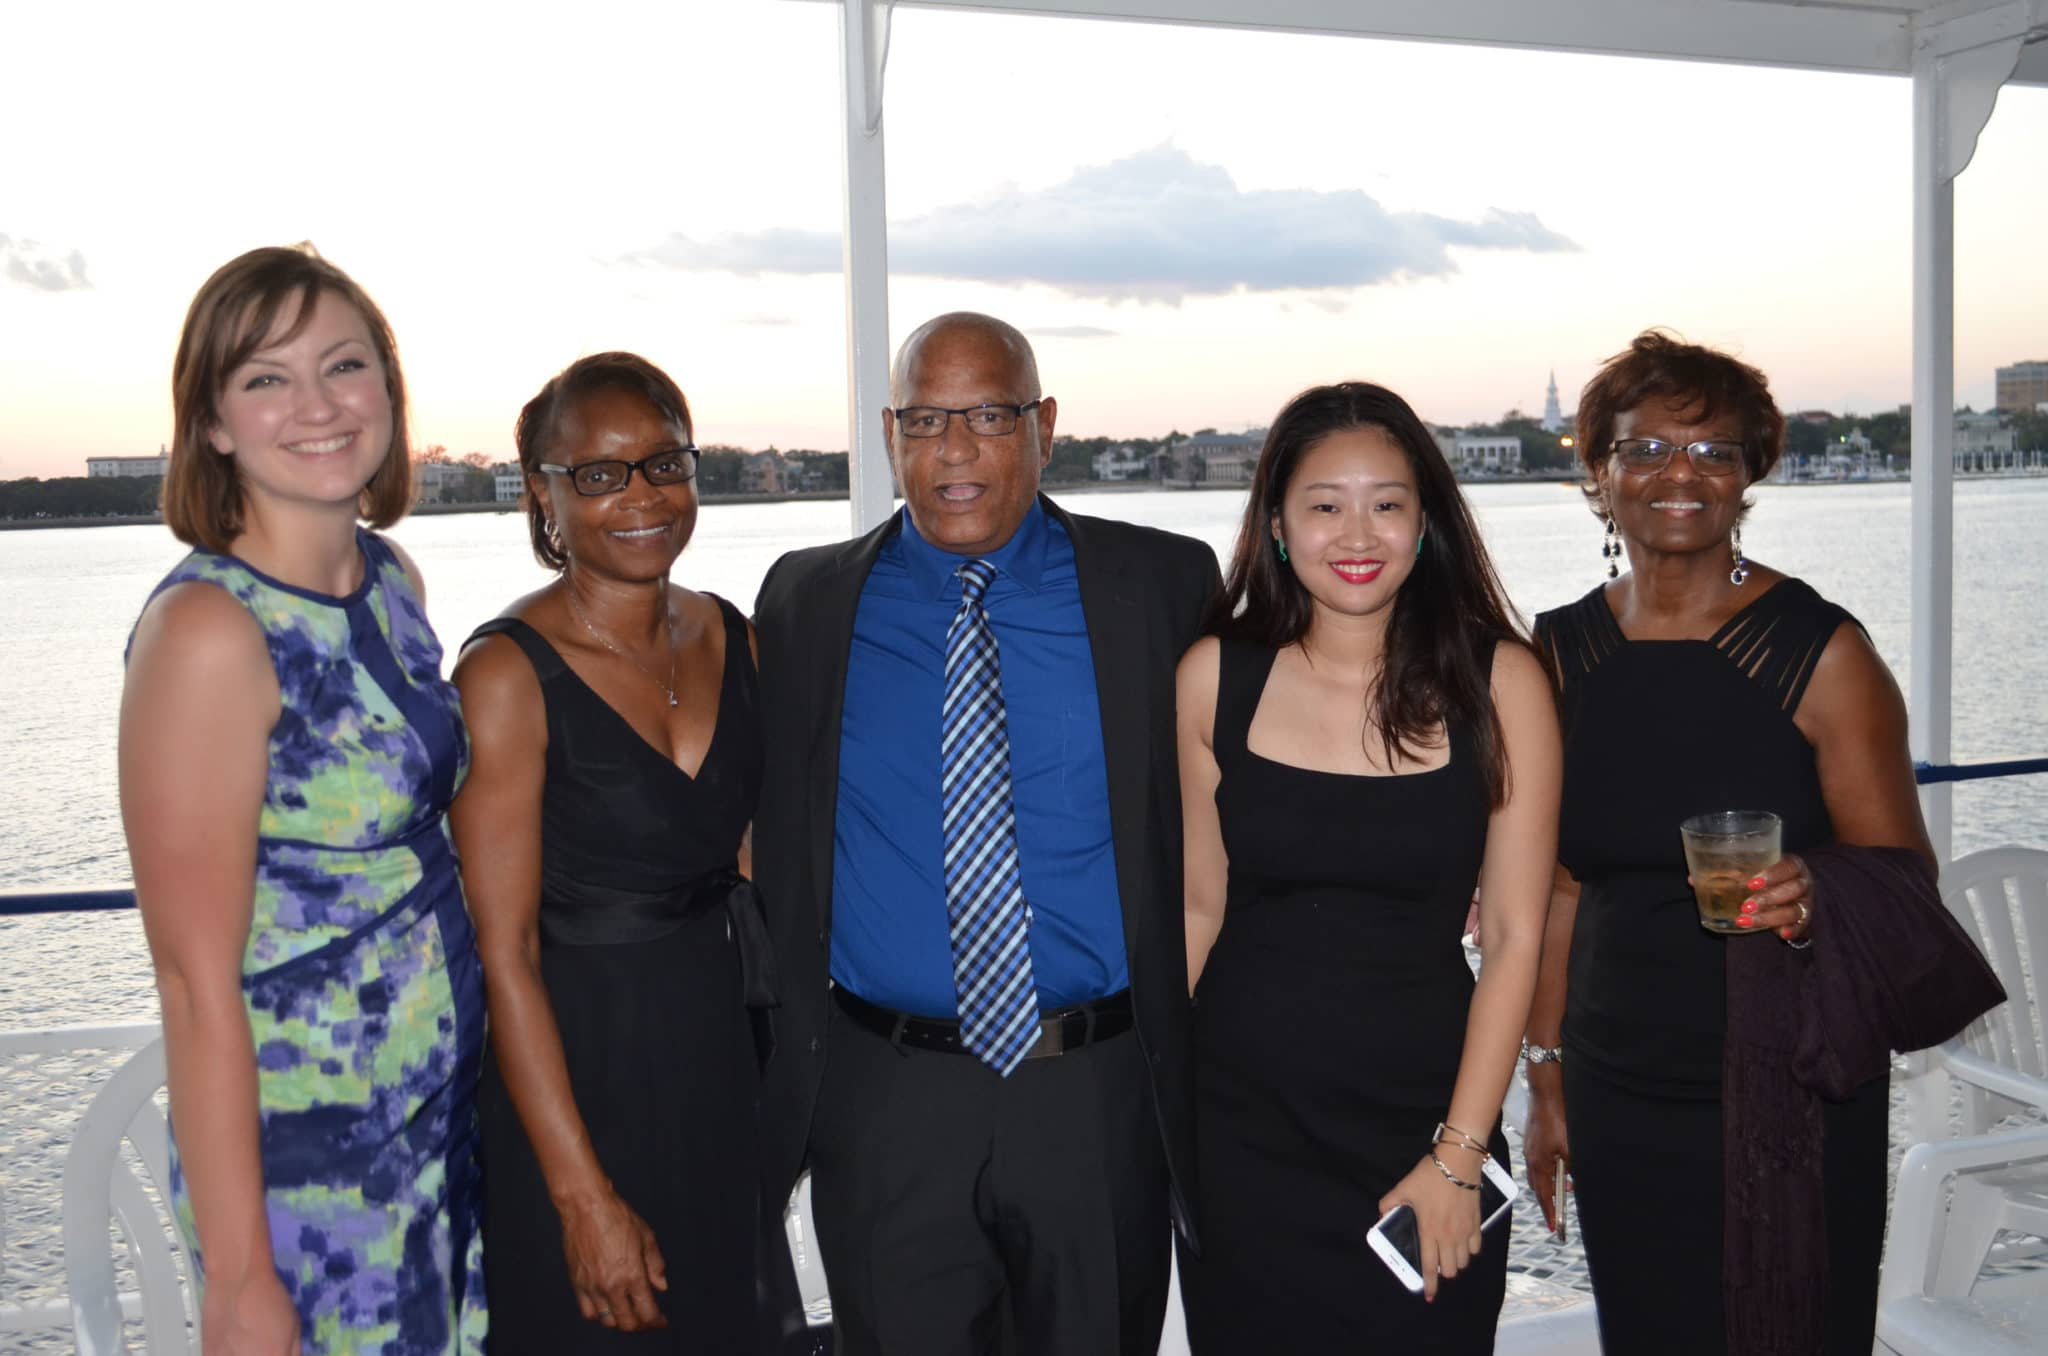 On September 24-27, 2017 Community Options hosted its 11th Annual iMatter Conference A Meaningful Life: Conference on Supported Employment at the Francis Marion Hotel in Charleston, SC. Awards Dinner cruise on Tuesday, September 26th aboard the Spirit of the Lowcountry on the Charleston, SC Harbor.